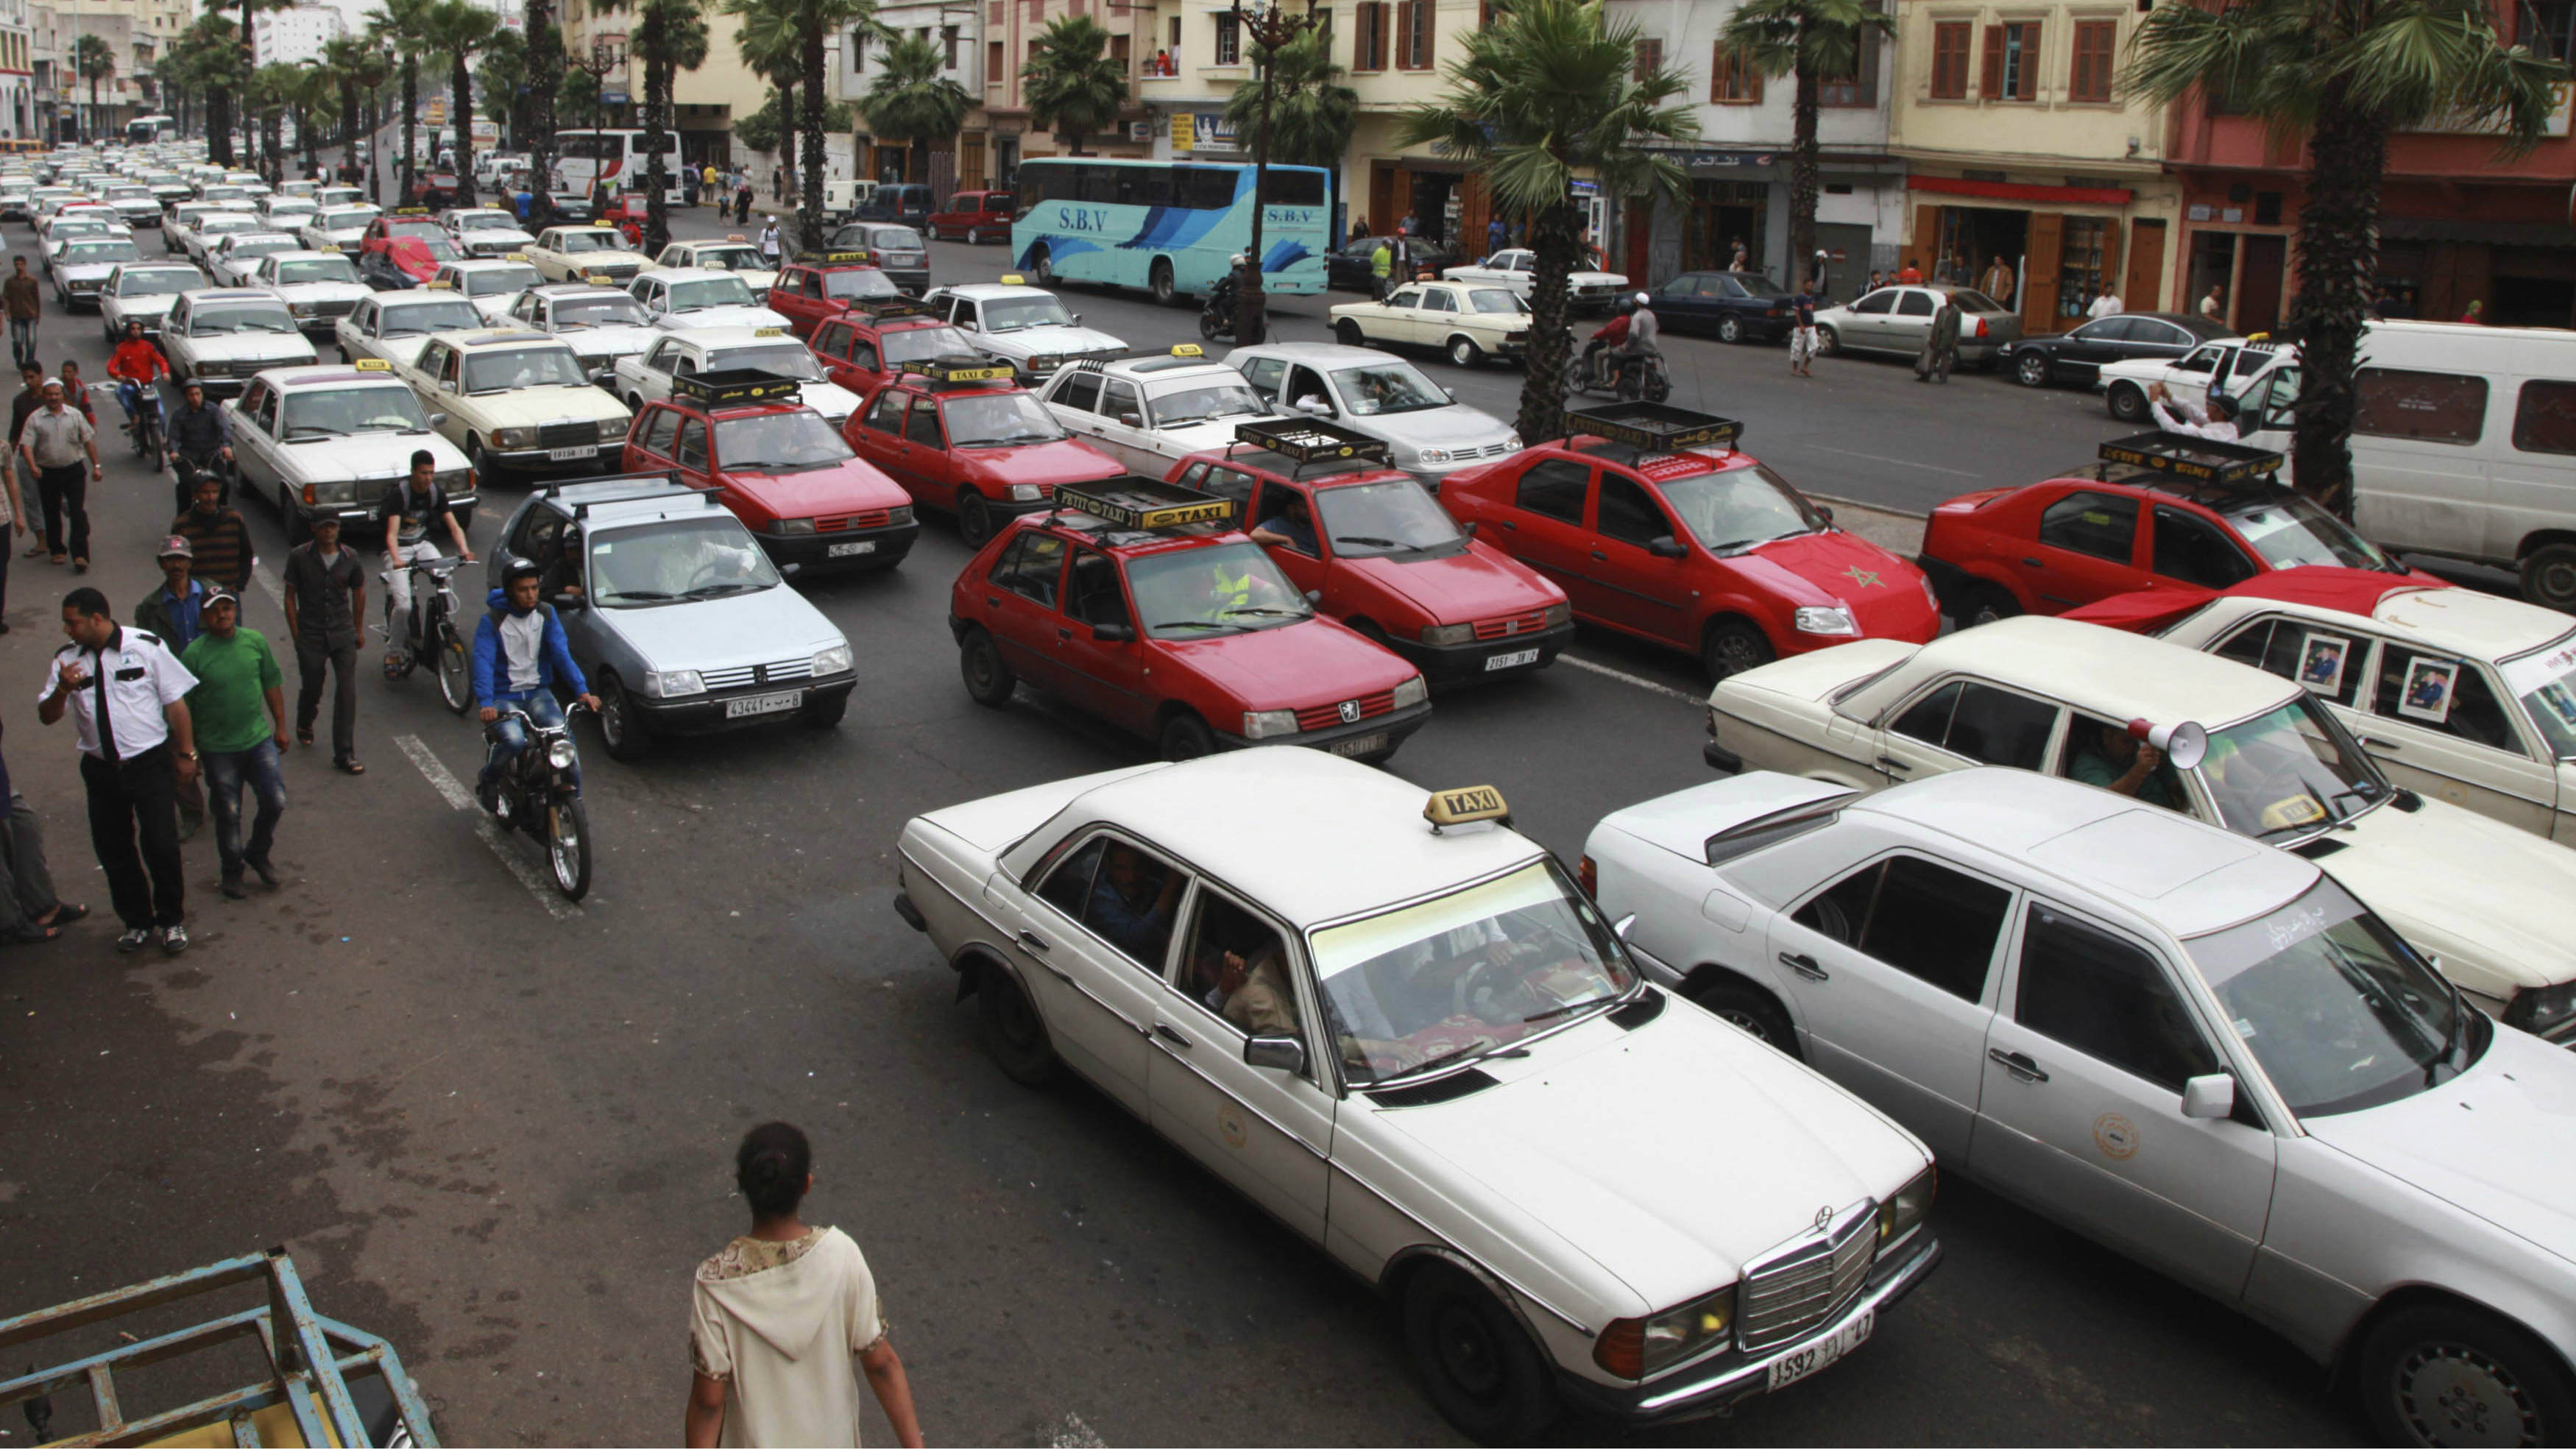 Taxi drivers protesting against a fuel hike bring traffic to a standstill outside the police headquarters in Casablanca's city centre June 11, 2012. Taxi drivers protested on Monday against a hike in fuel prices implemented by Moroccan Prime Minister Abdelilah Benkirane's government.